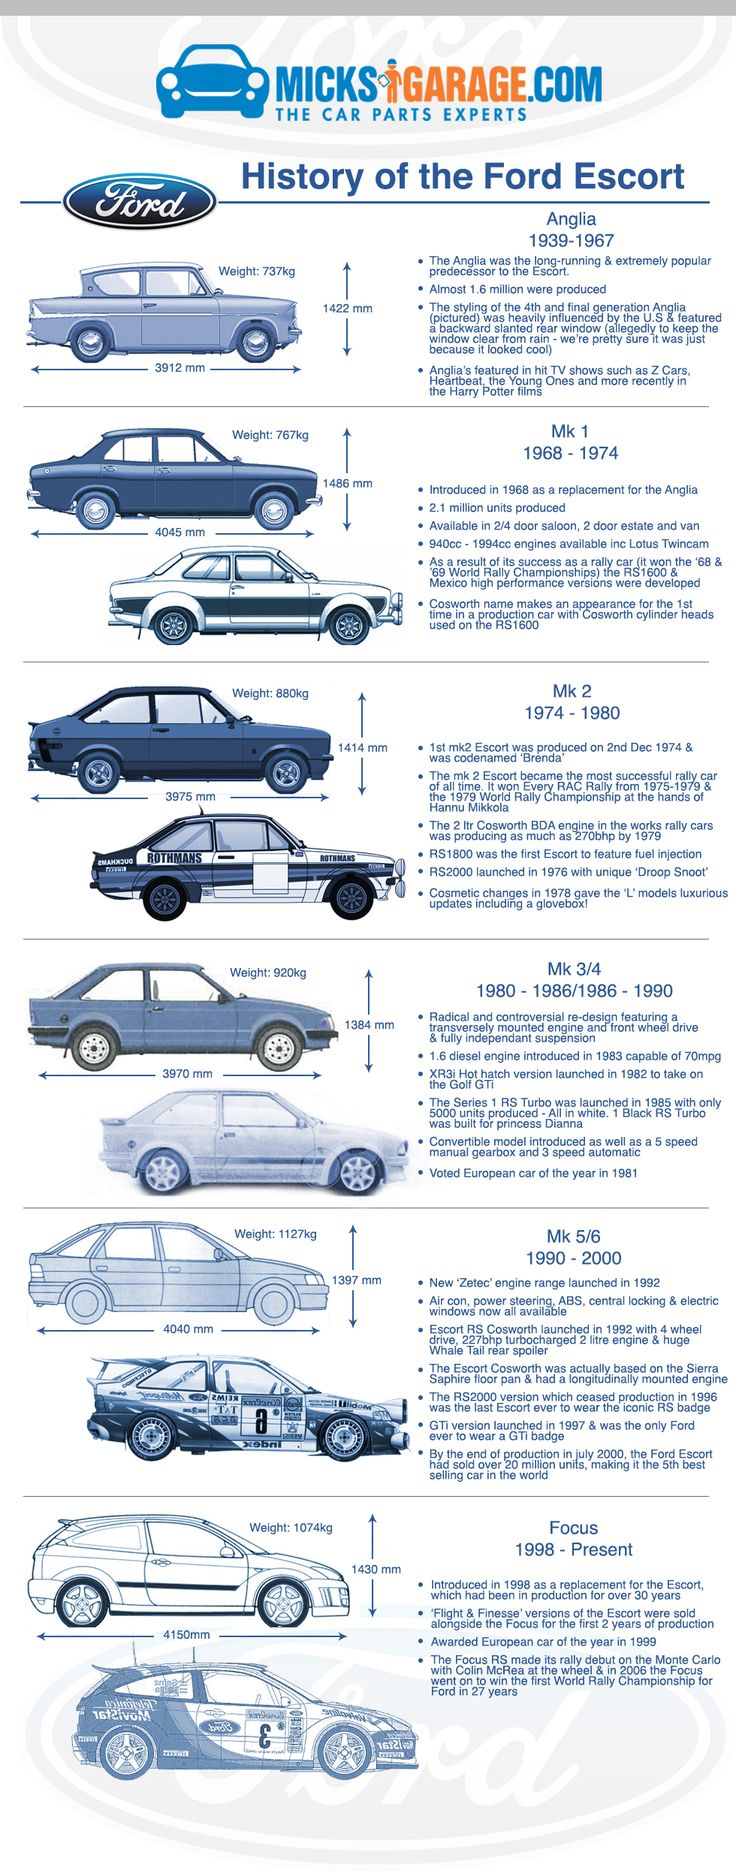 History of the Ford Escort